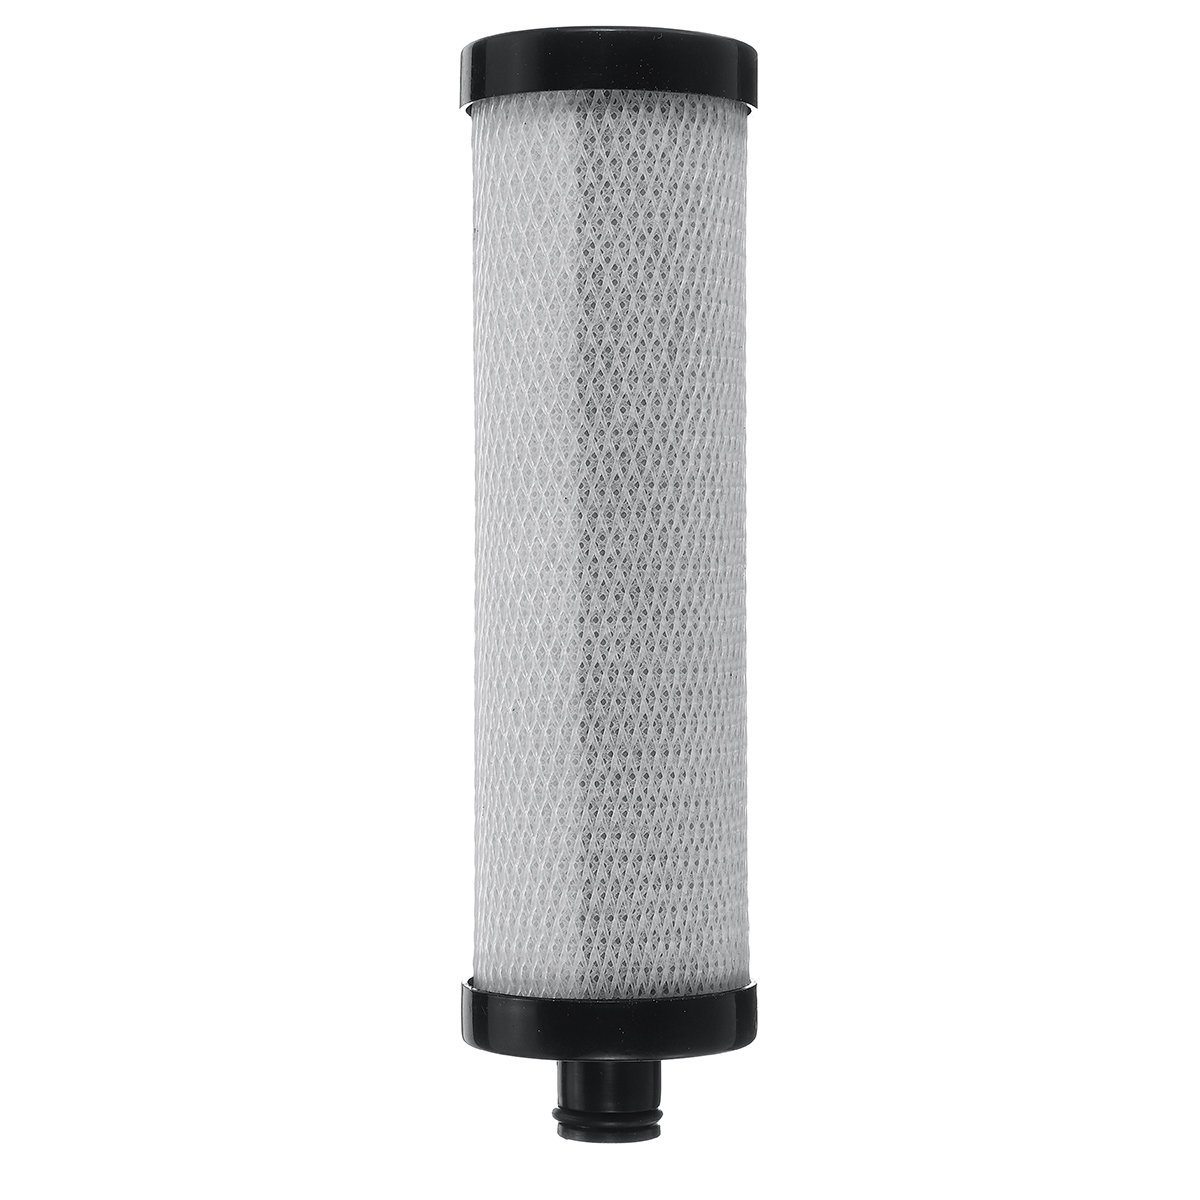 Filter for Water Filter System Household Water Purifier System